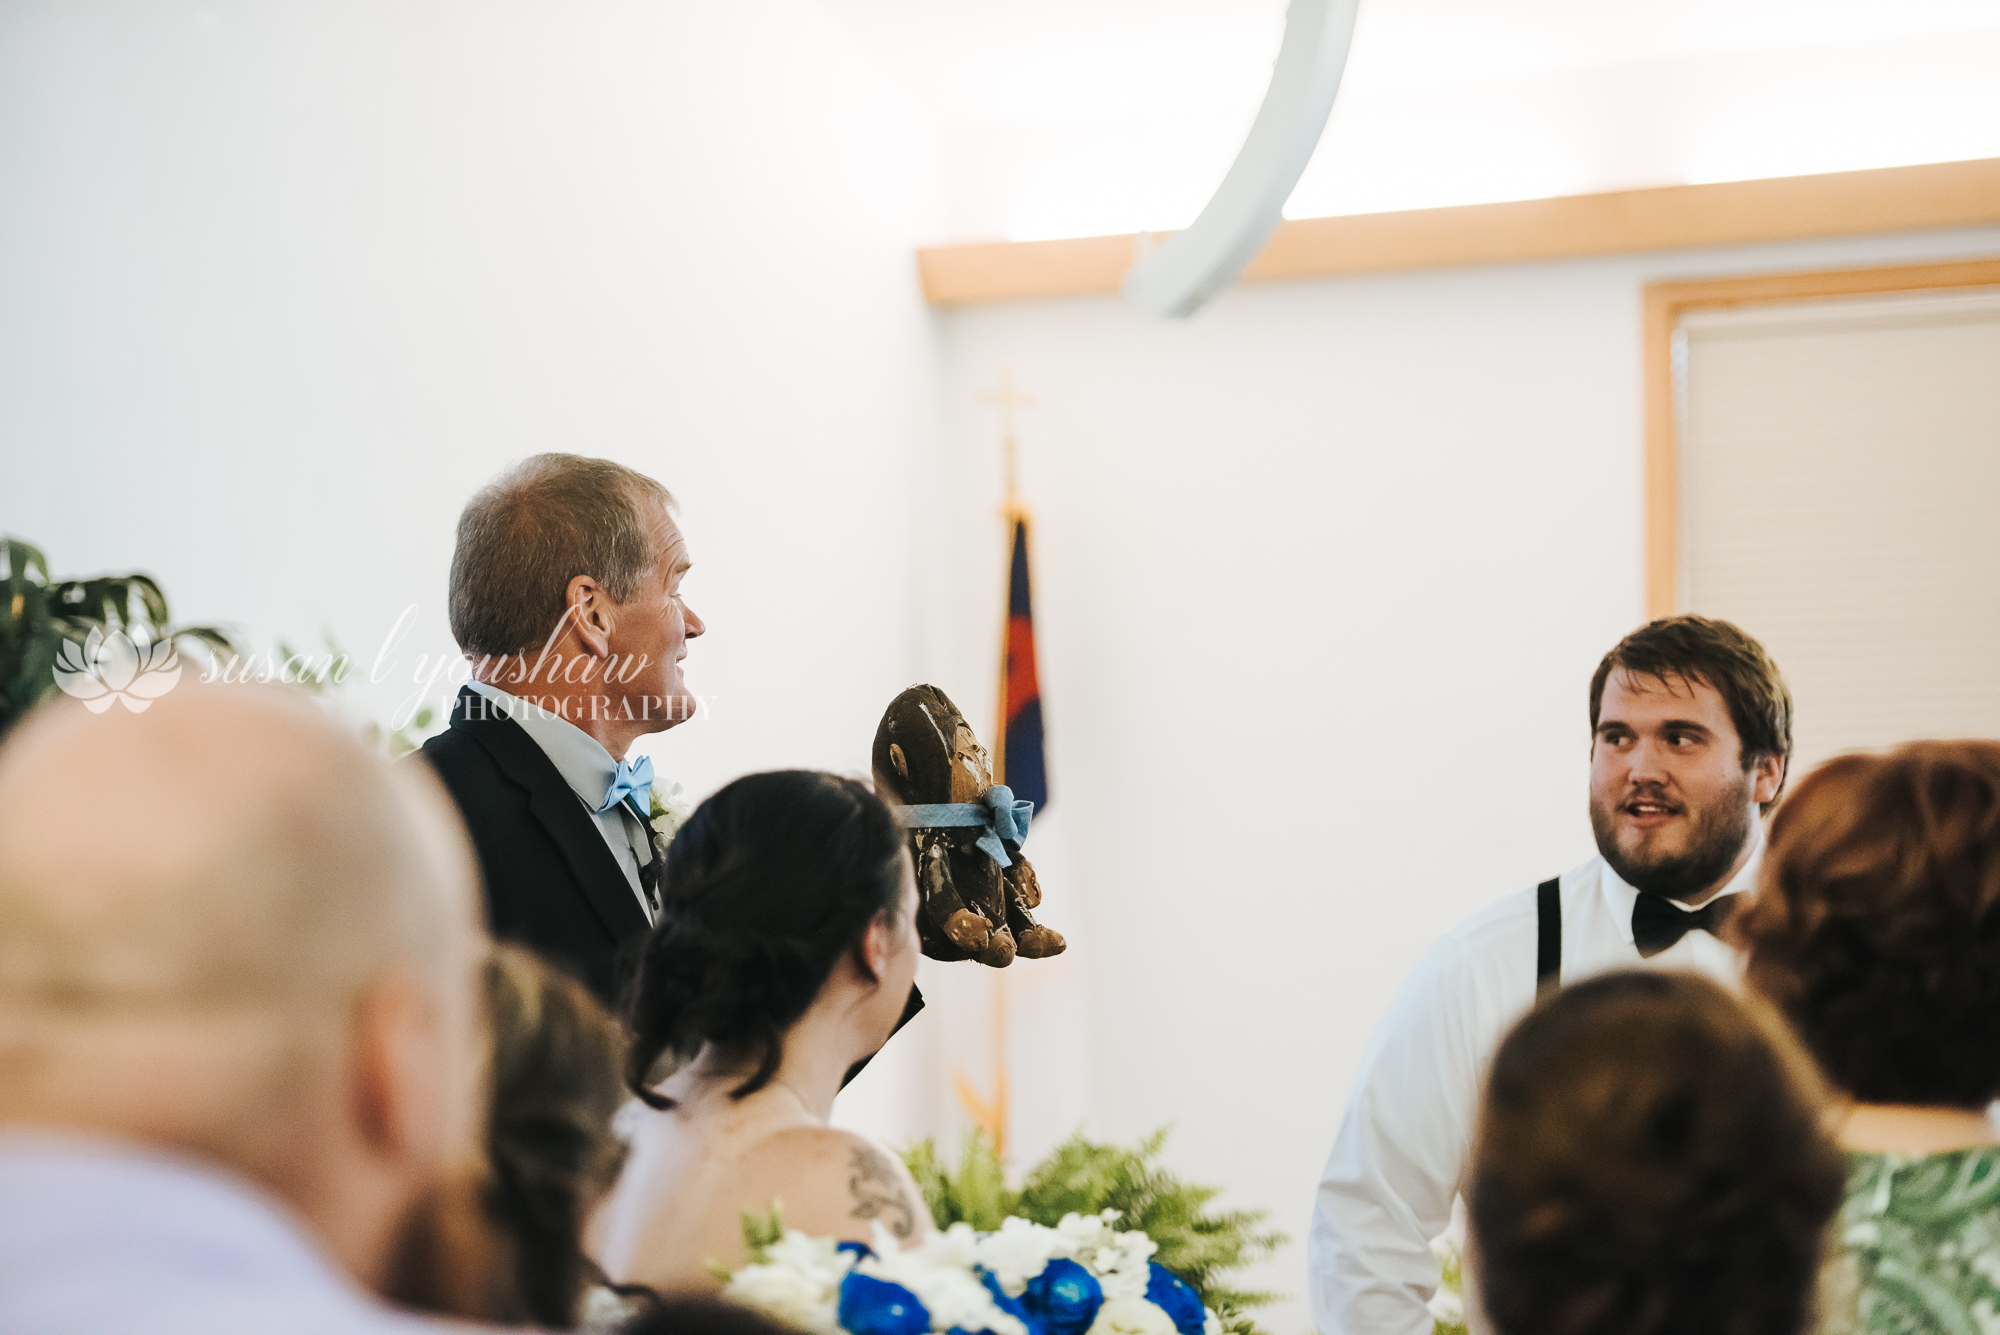 Katelyn and Wes Wedding Photos 07-13-2019 SLY Photography-61.jpg